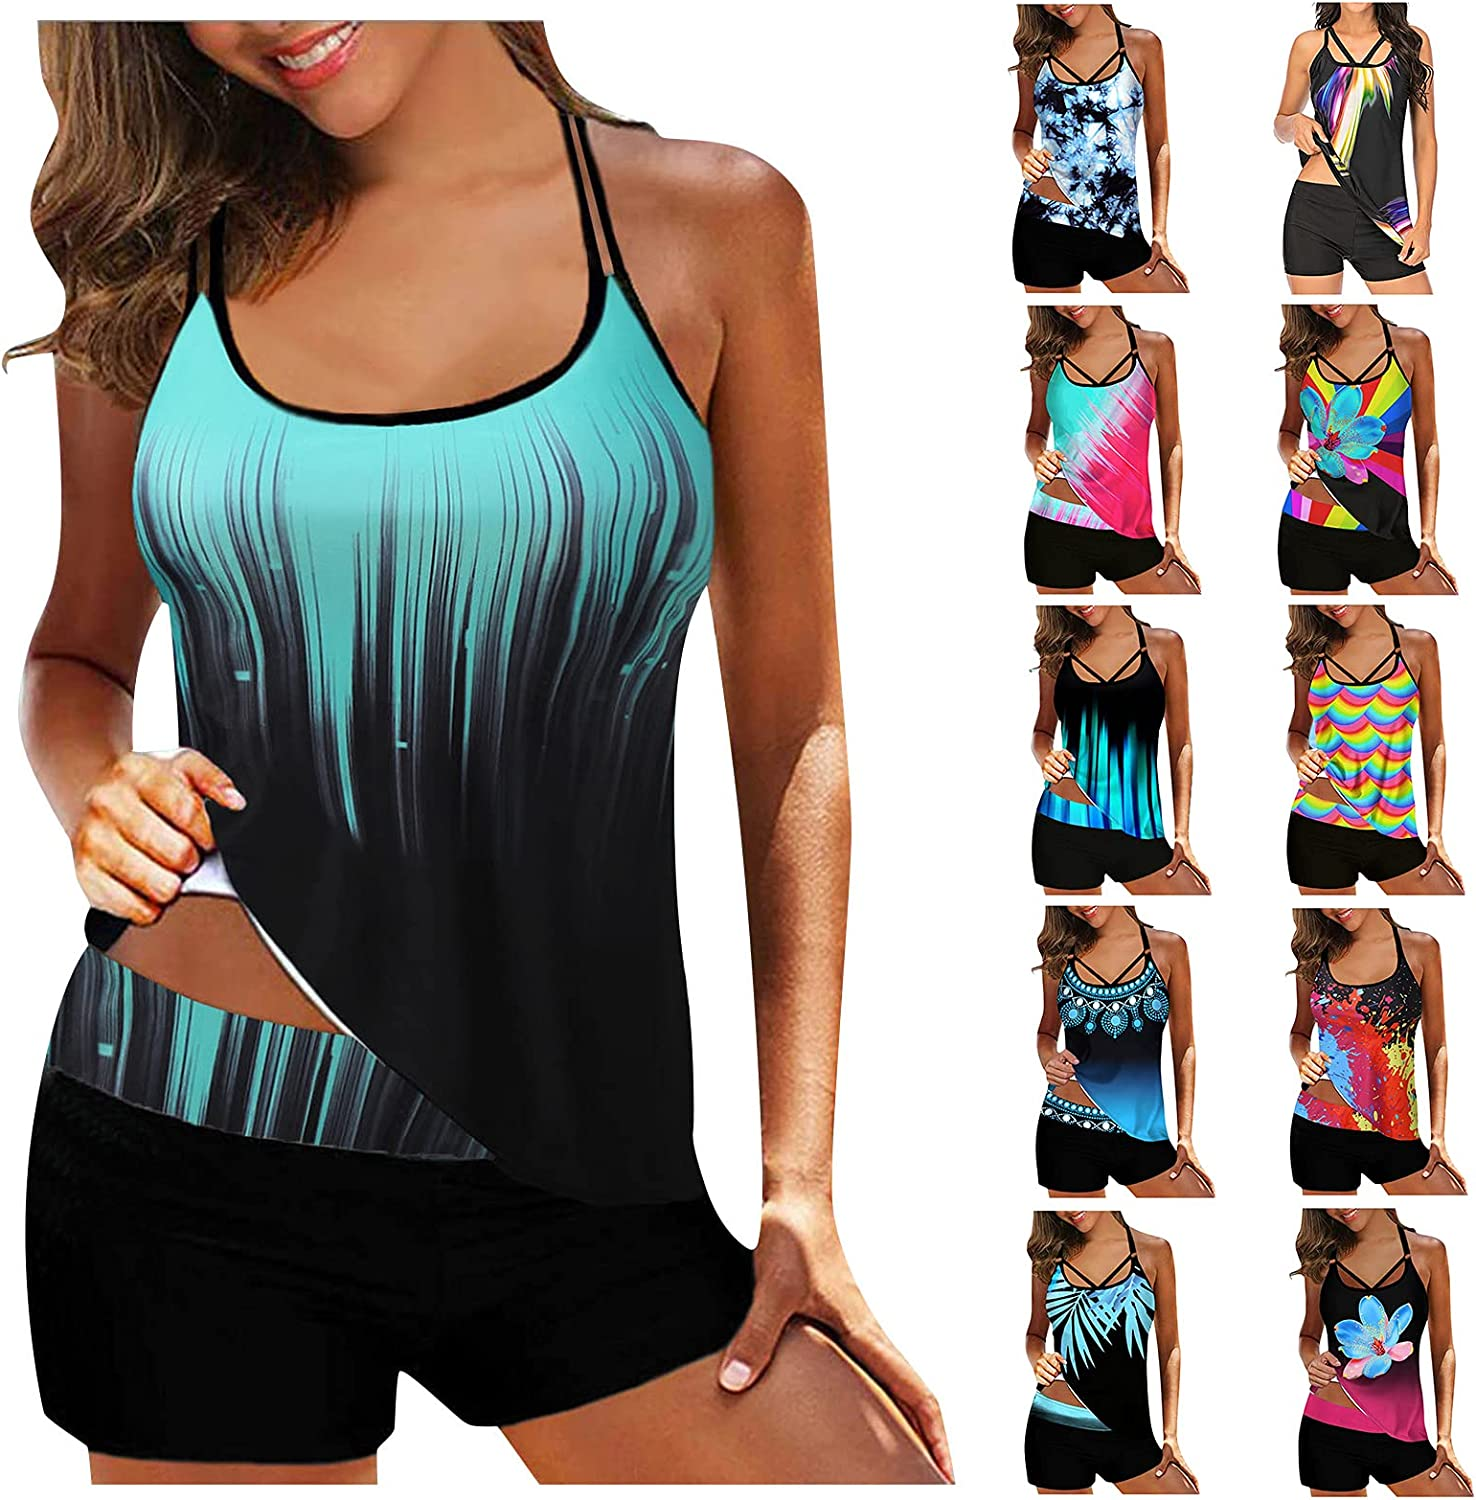 JPLZi Swimming Suit for Women Plus Size Halter Tankini Top and Skort Bottom Set Bathing Suits Two Piece Tankini Swimsuits